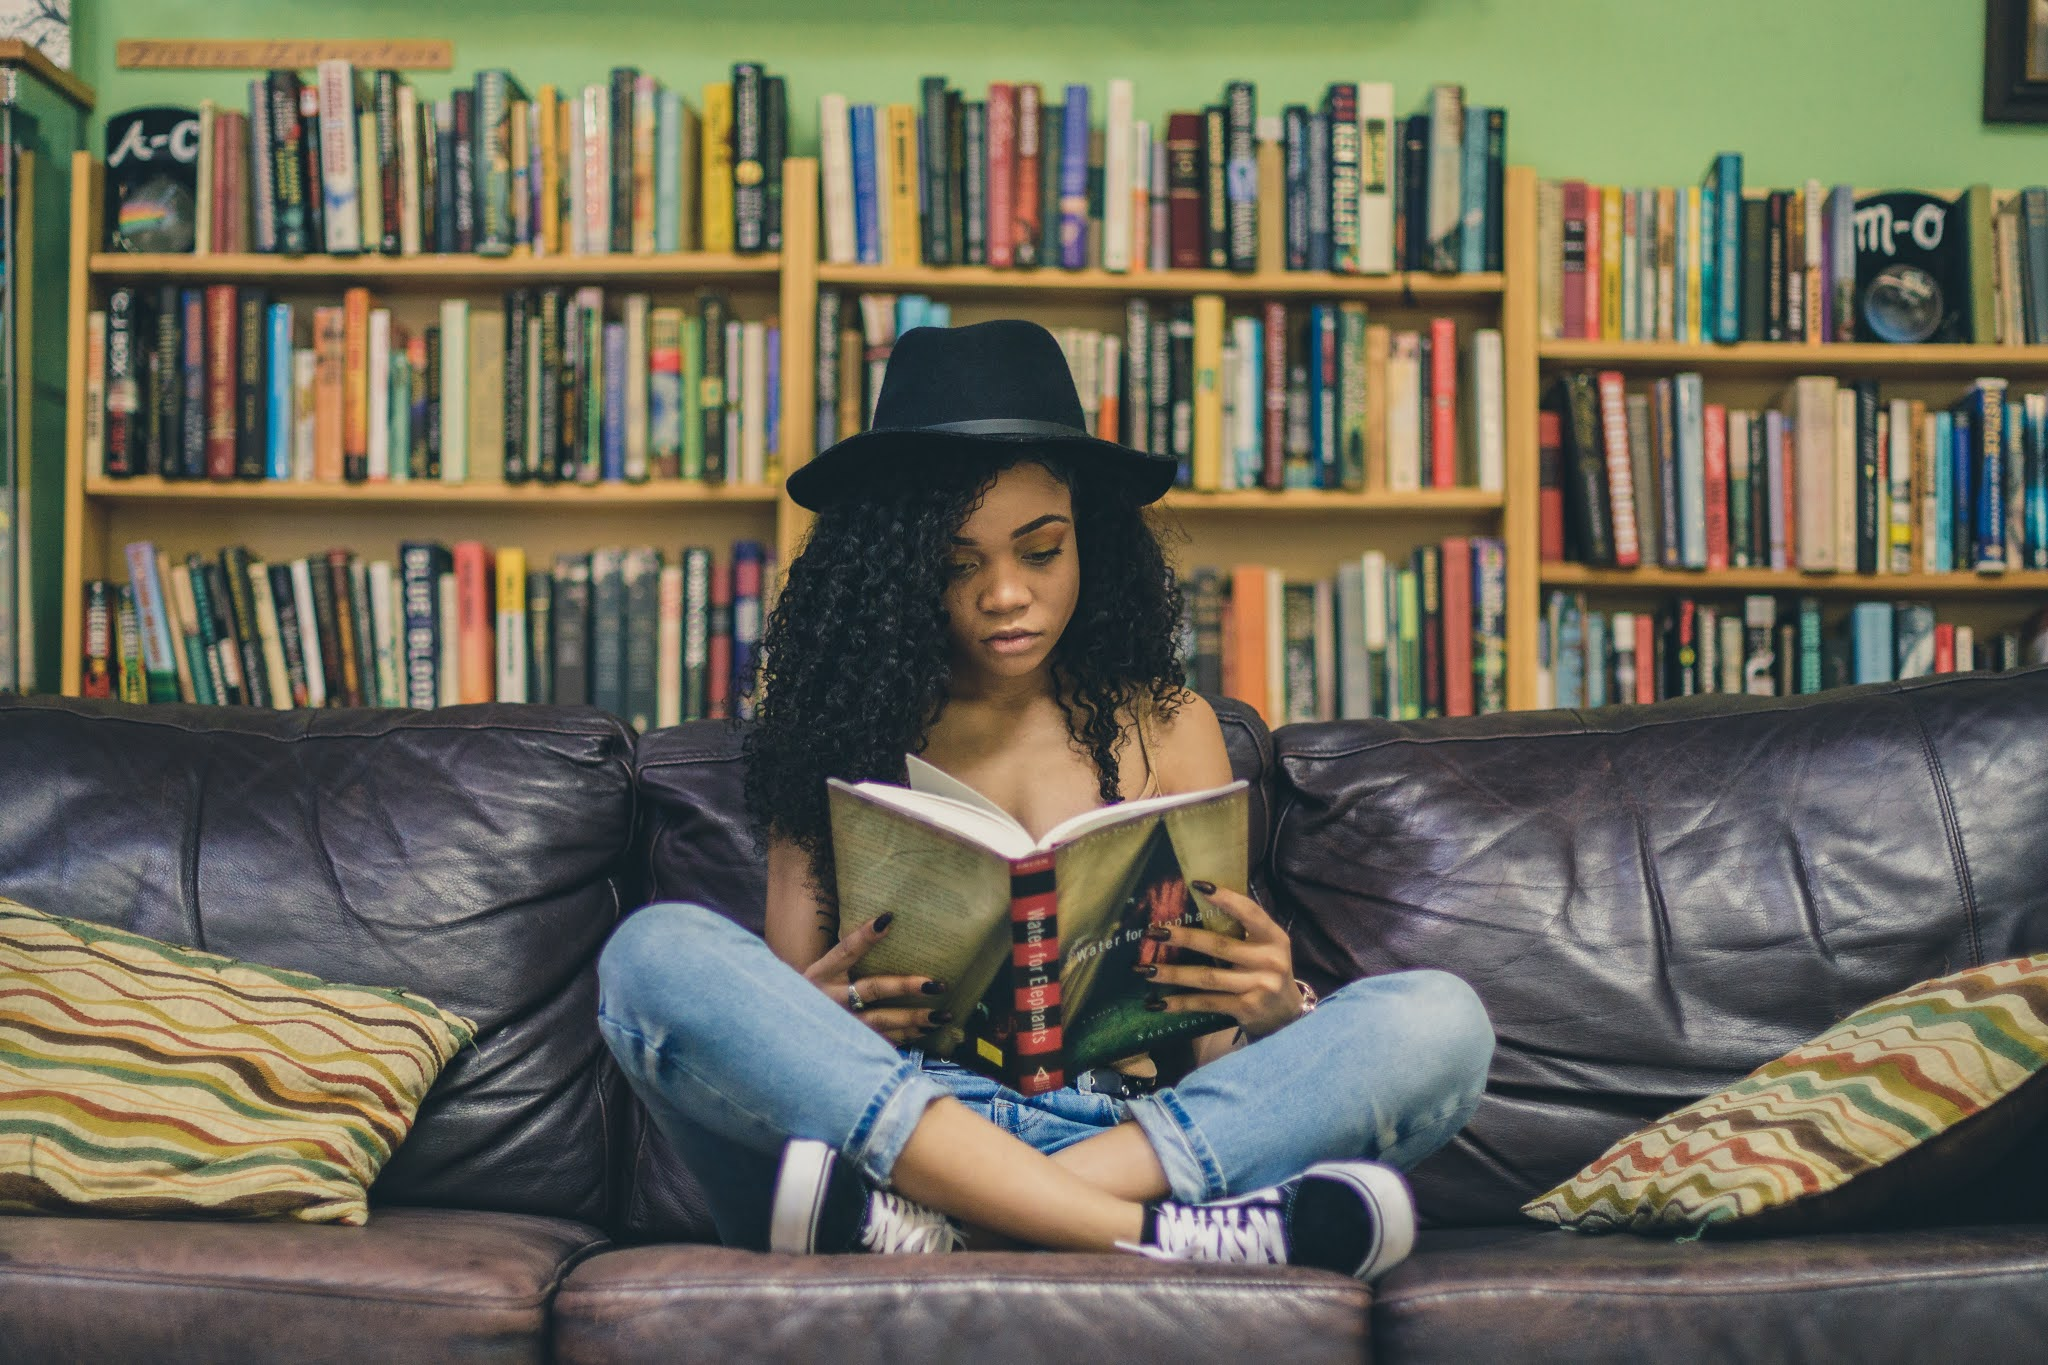 Increase your earning potential by expanding your mental capital. Here are my book recommendations for achieving your goals, figuring out your purpose, and getting a deeper relationship with God.